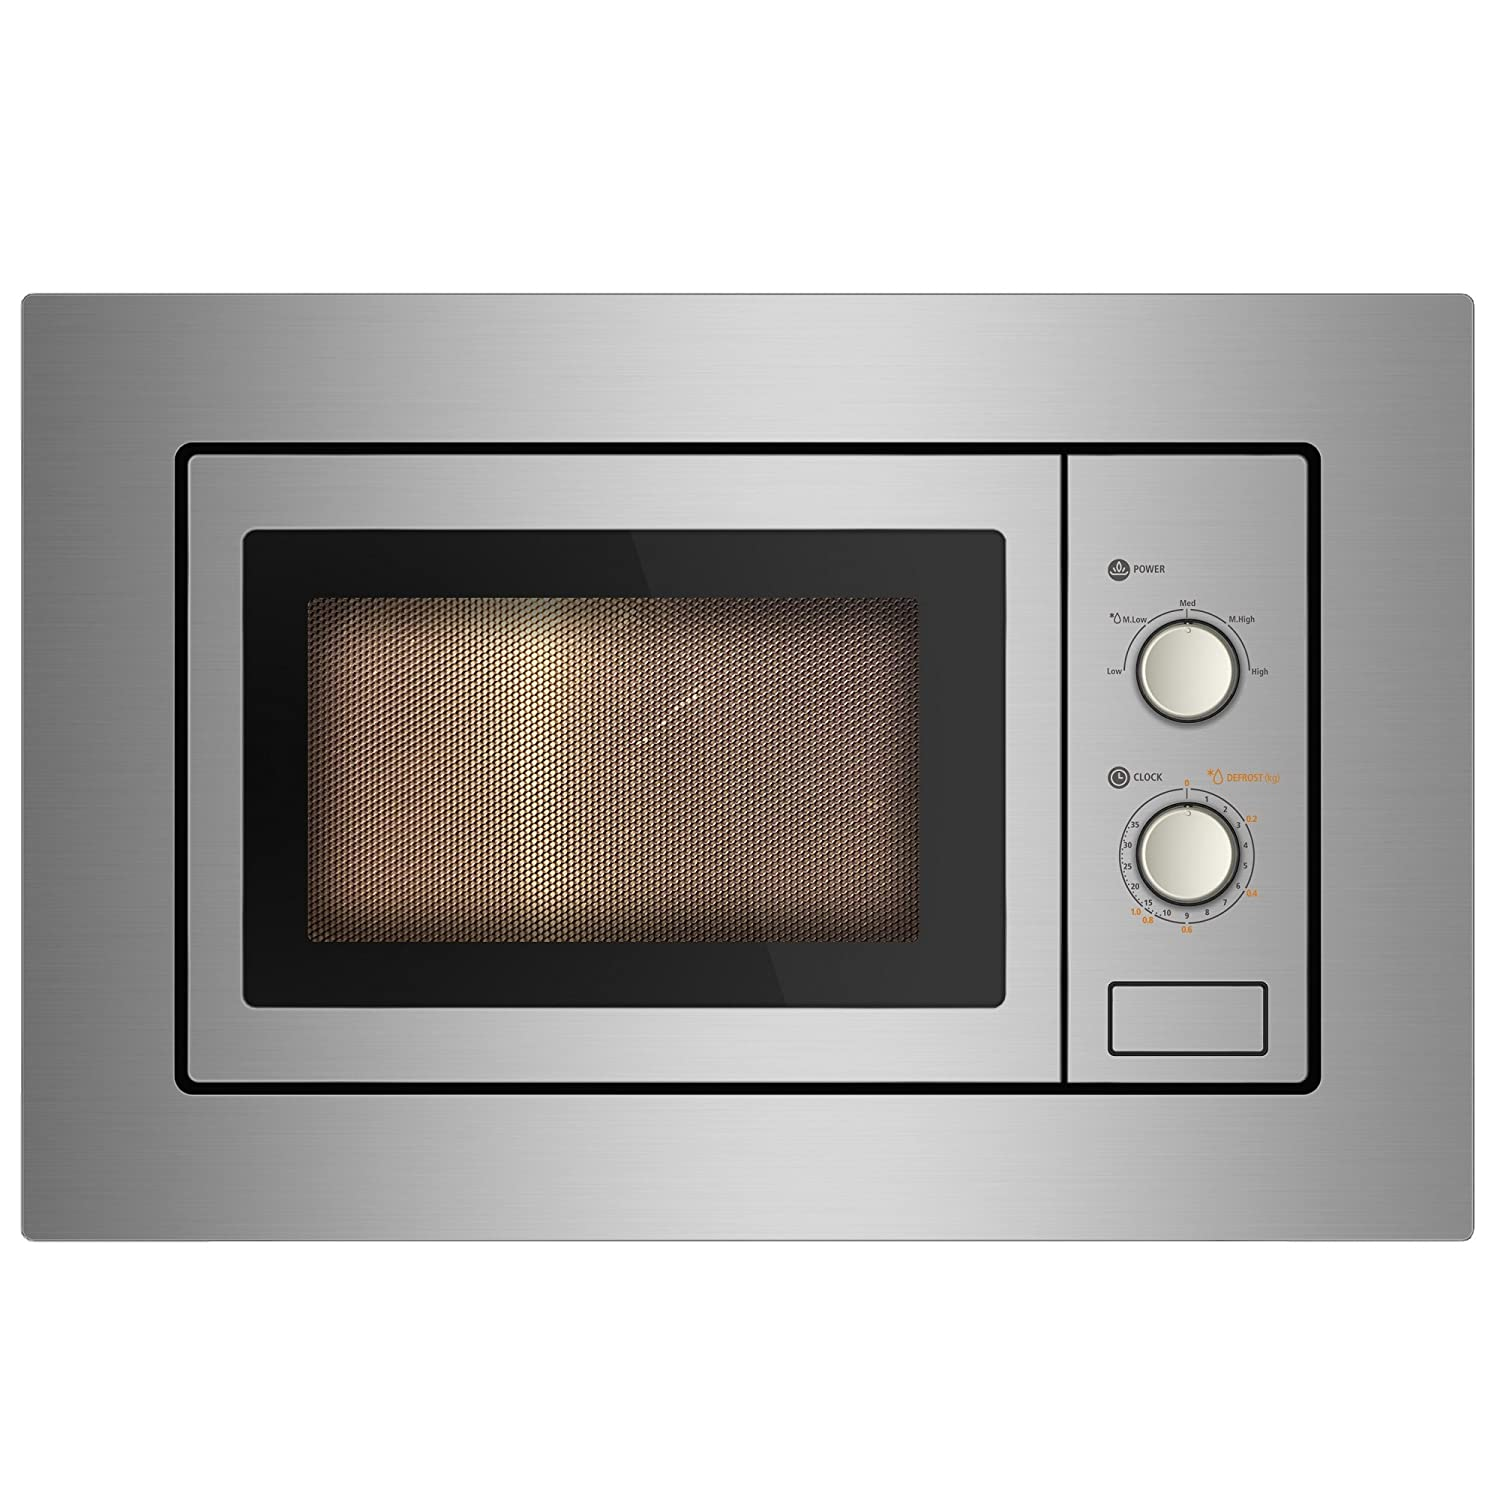 Cookology IM17LSS Built-in Microwave in Stainless Steel | Integrated Frame Trim Kit